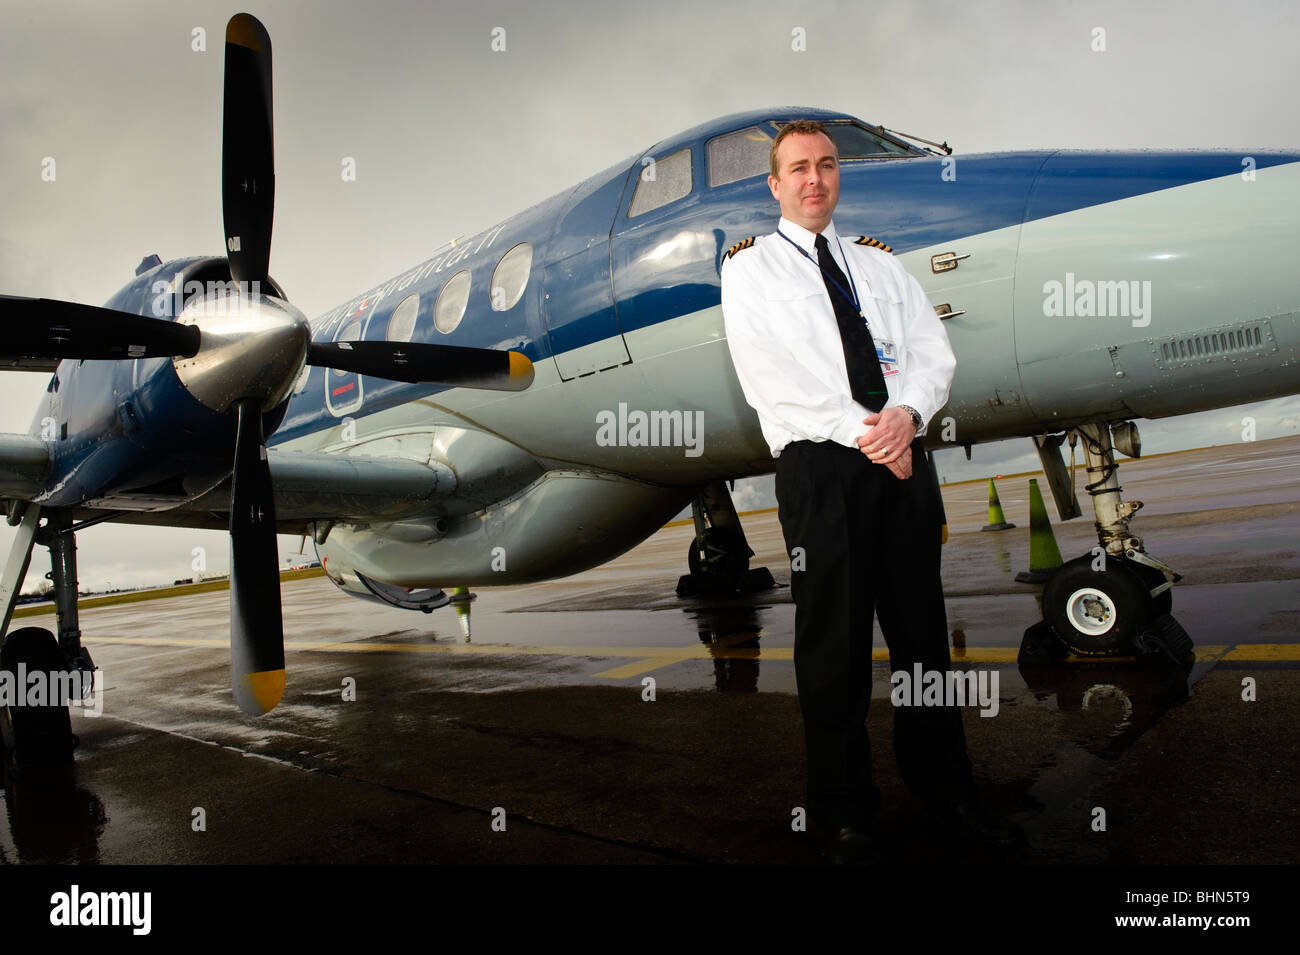 Elliston Miller,pilot with Highland Airways, with small turbo-prop commuter airplane at Cardiff Airport, south Wales - Stock Image